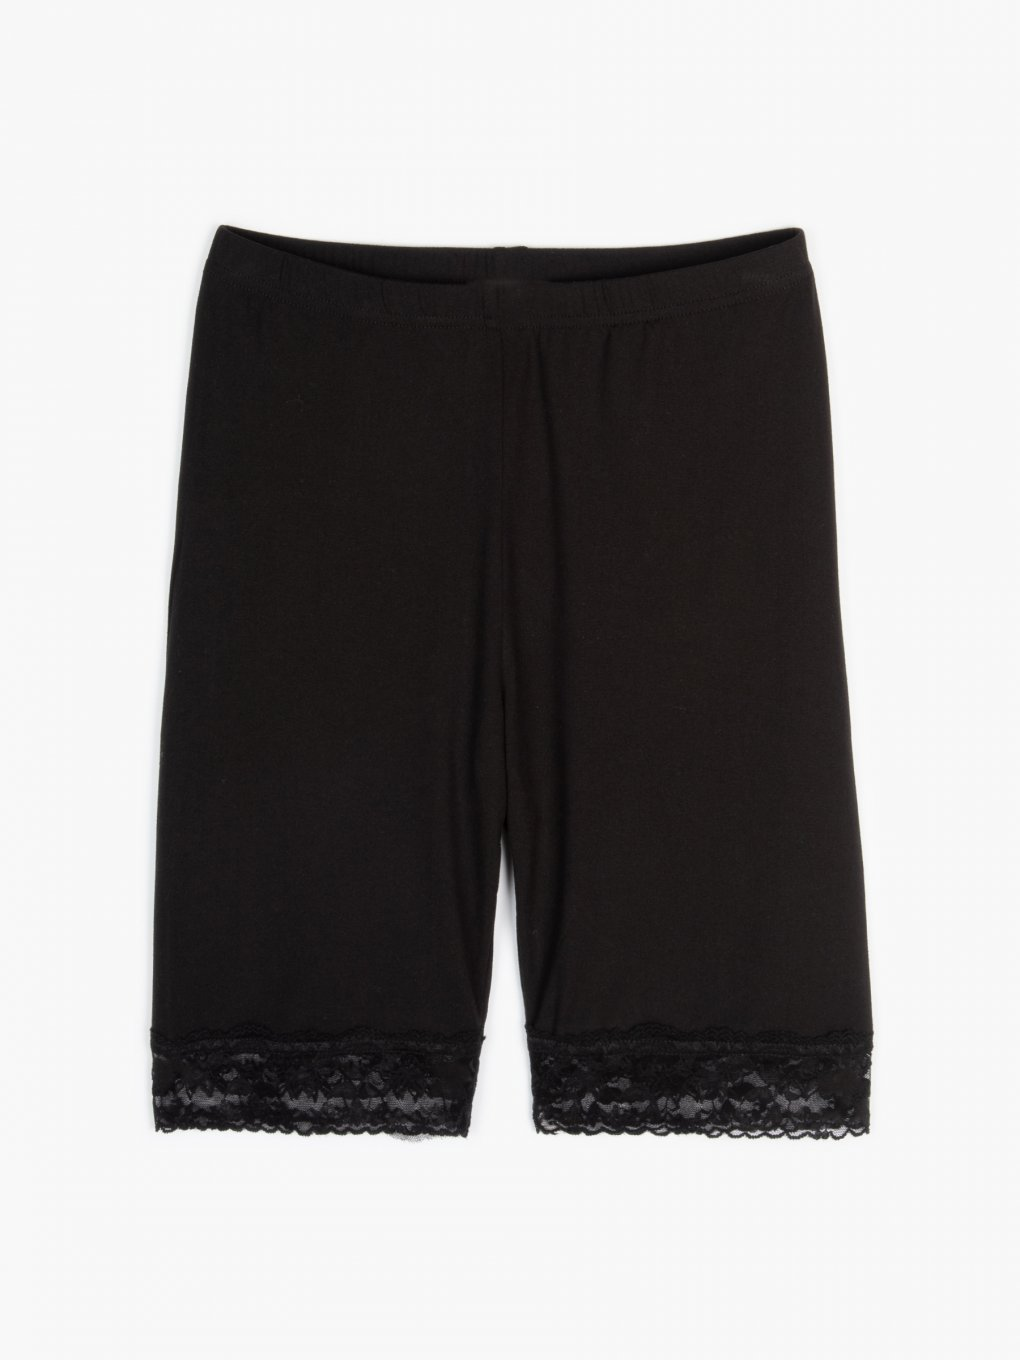 Cycling shorts with lace